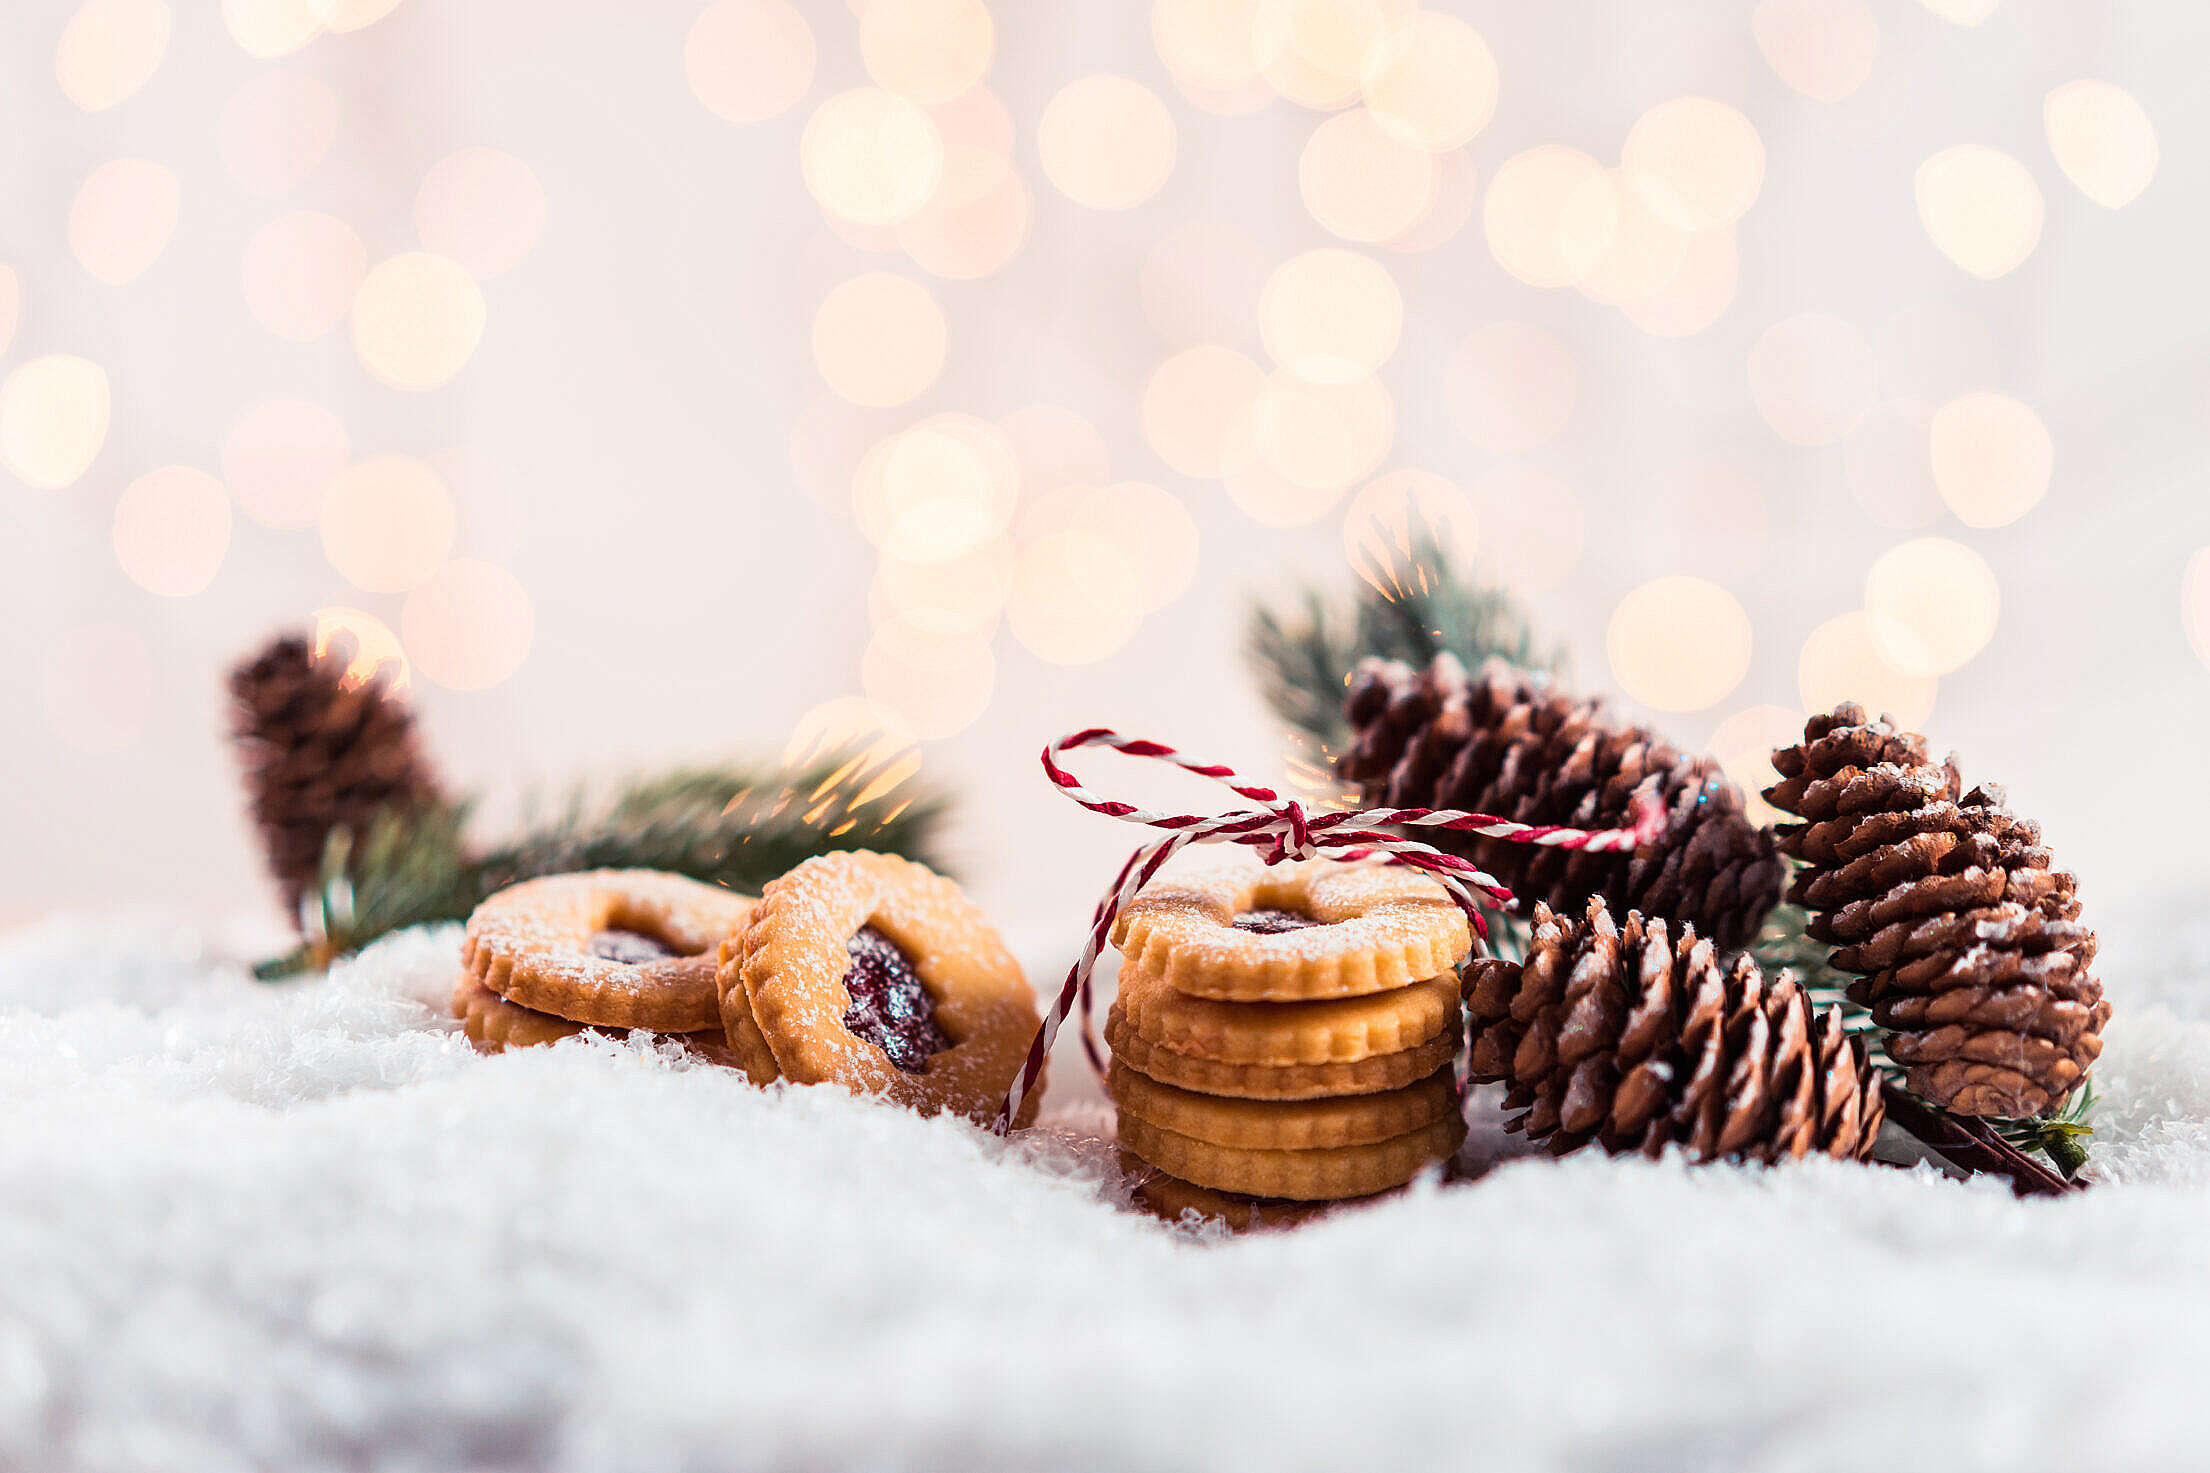 Christmas Still Life with Space for Text Free Stock Photo